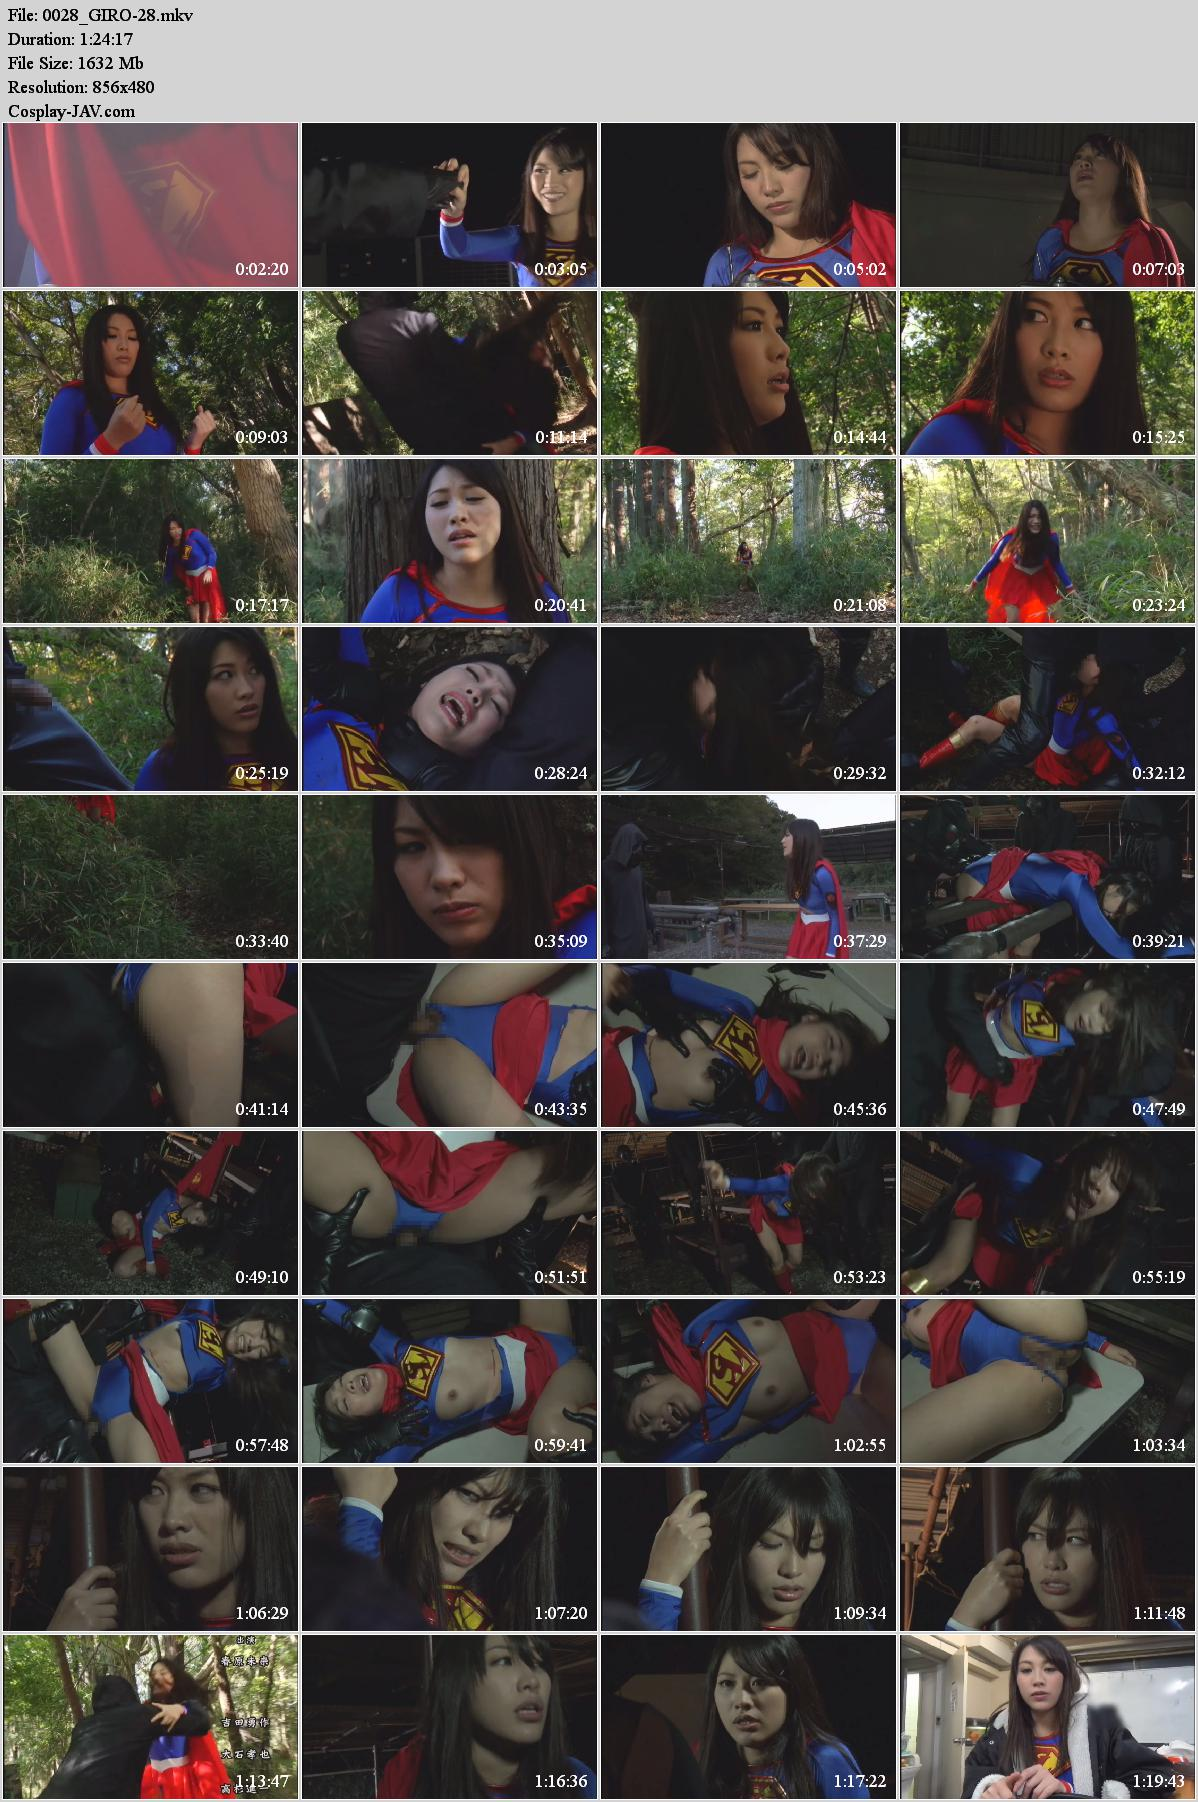 GIRO-28 Superheroine Outdoor Insult Super Lady Lost Power Future Sunohara